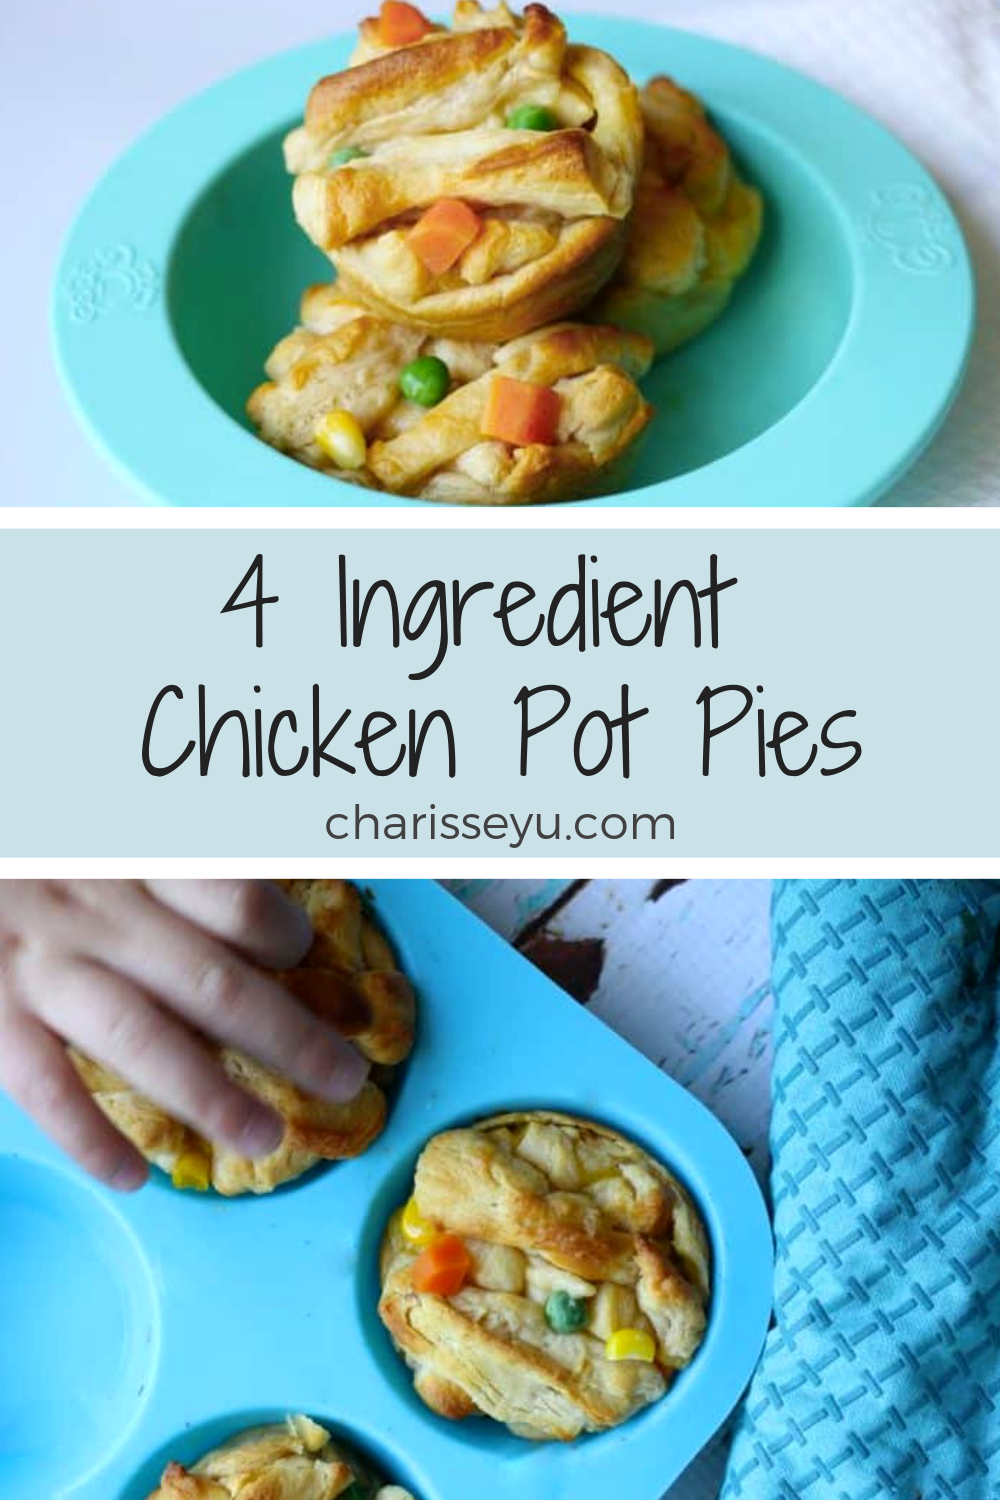 4 Ingredient Mini Chicken Pot Pies images